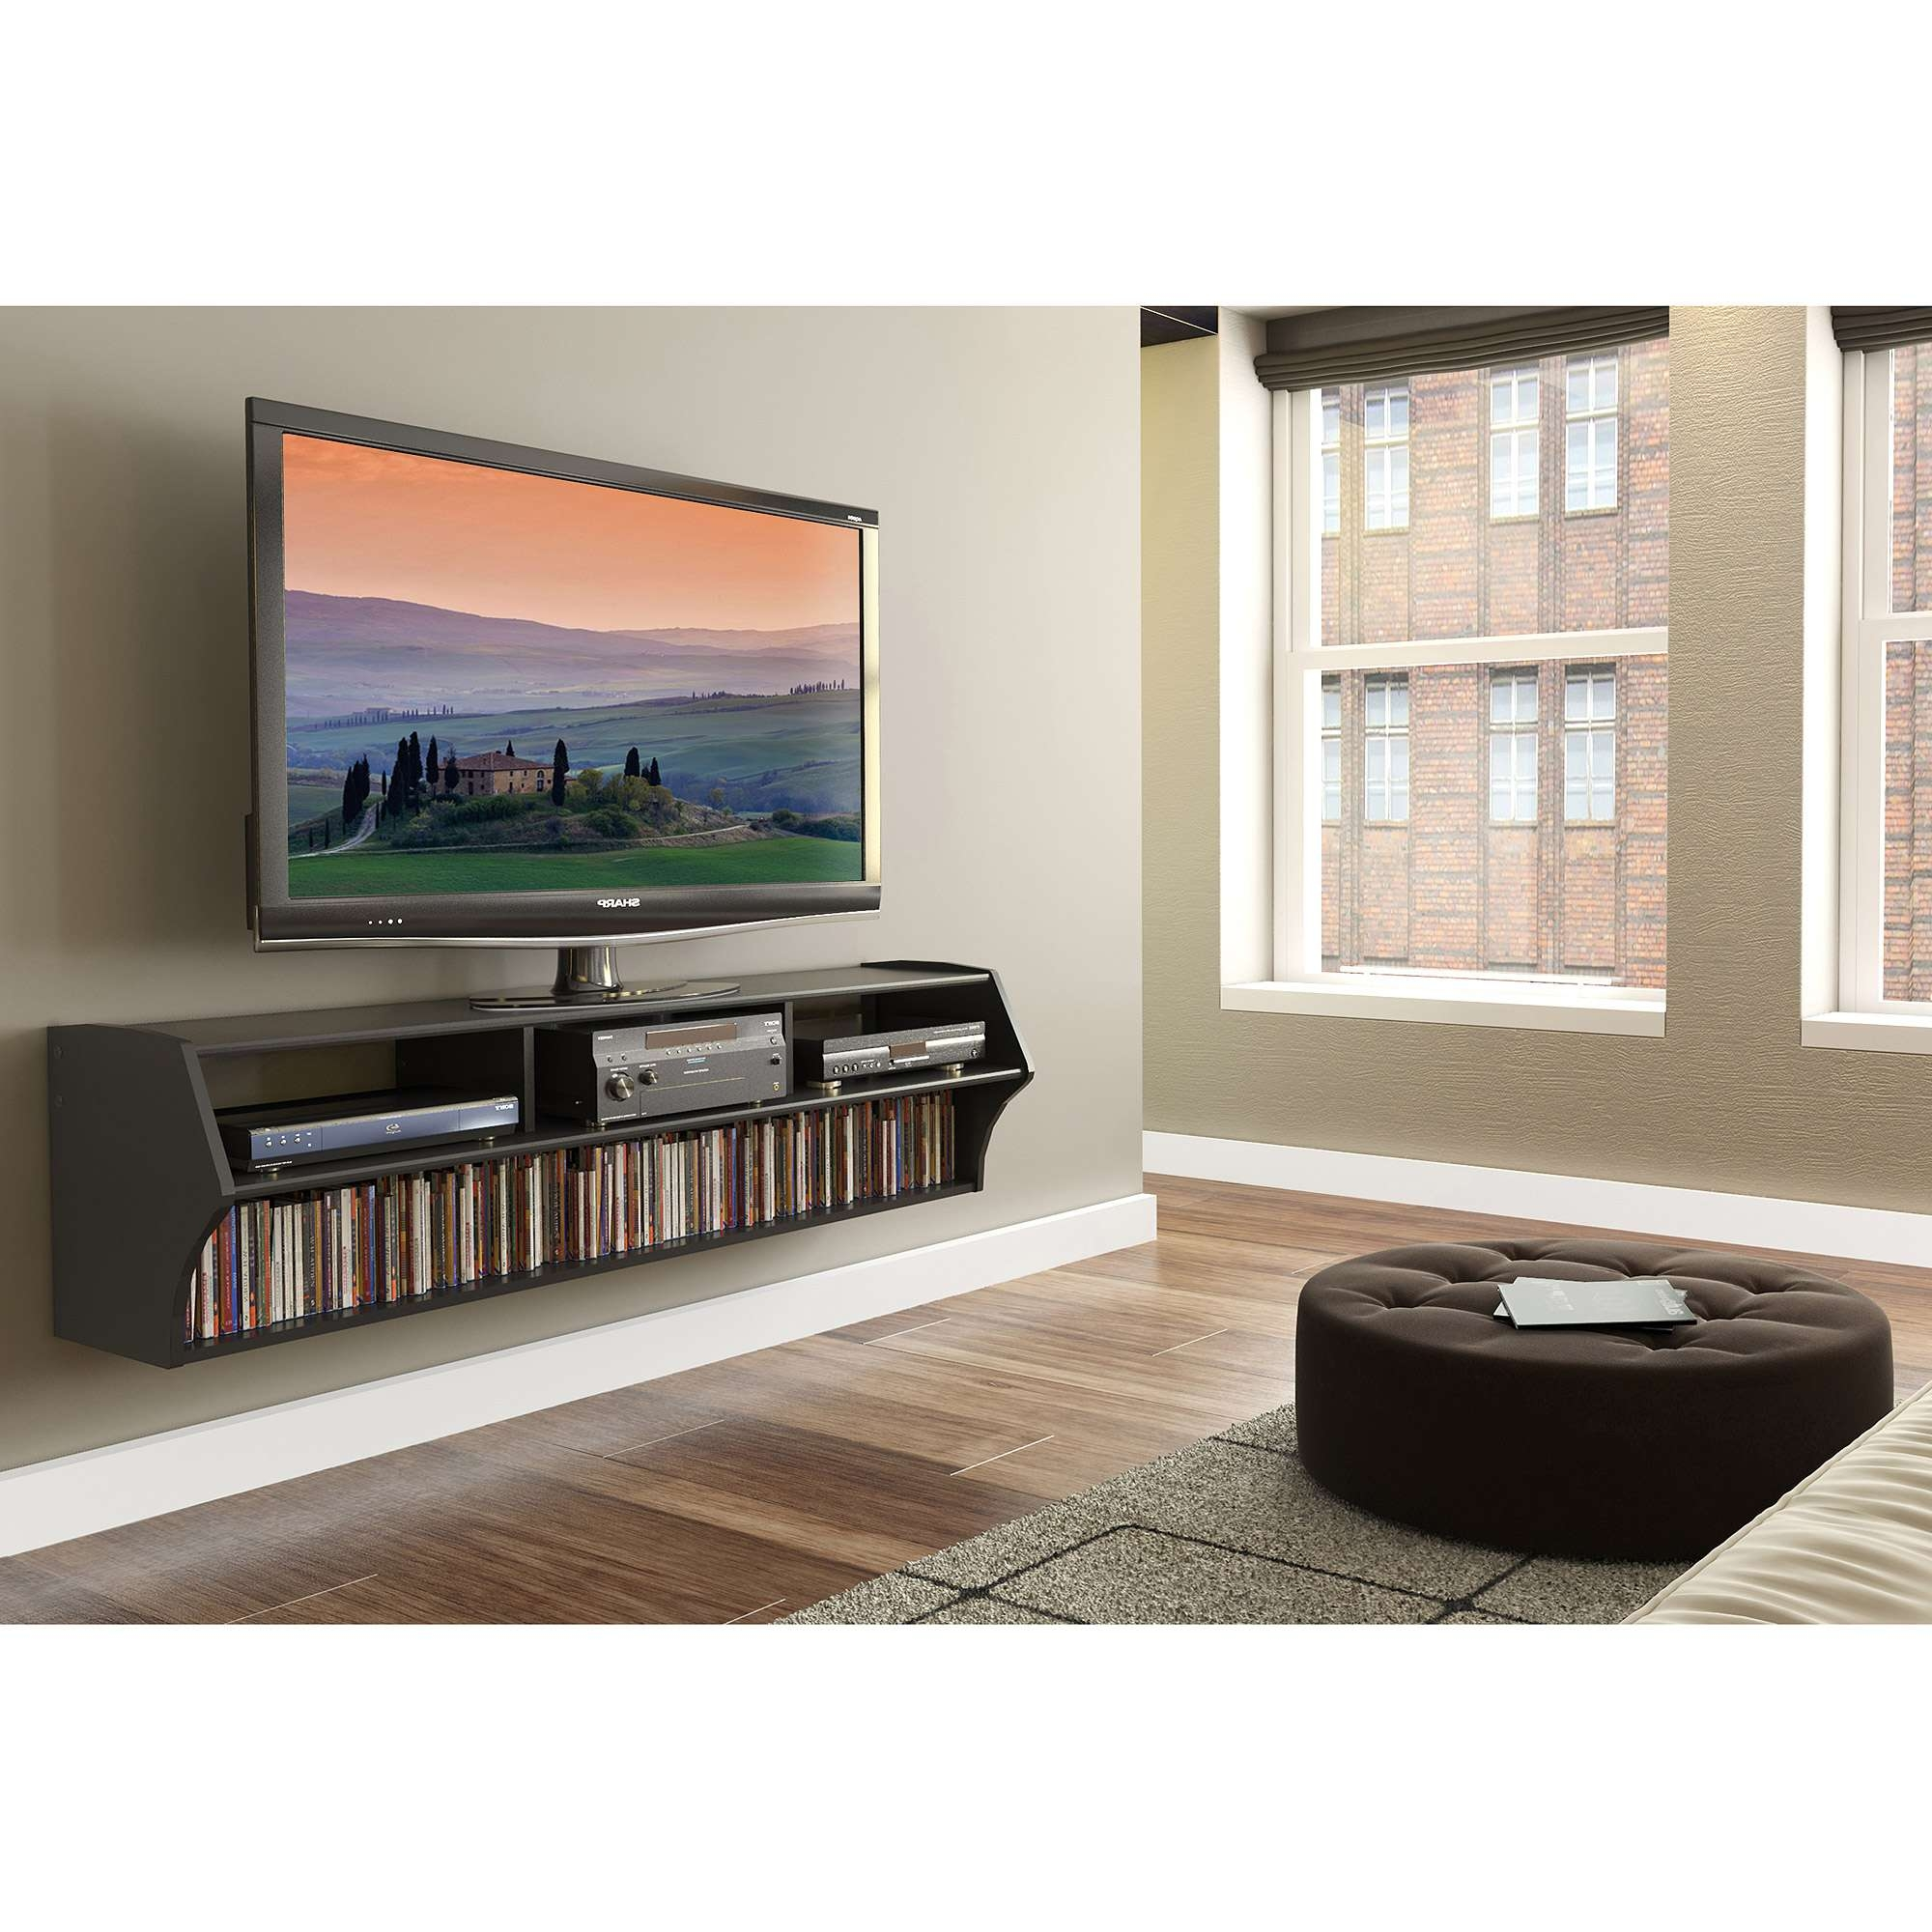 "Altus Plus Floating Tv Stand For Tvs Up To 60"" – Walmart Inside Modern Tv Stands For 60 Inch Tvs (View 2 of 15)"